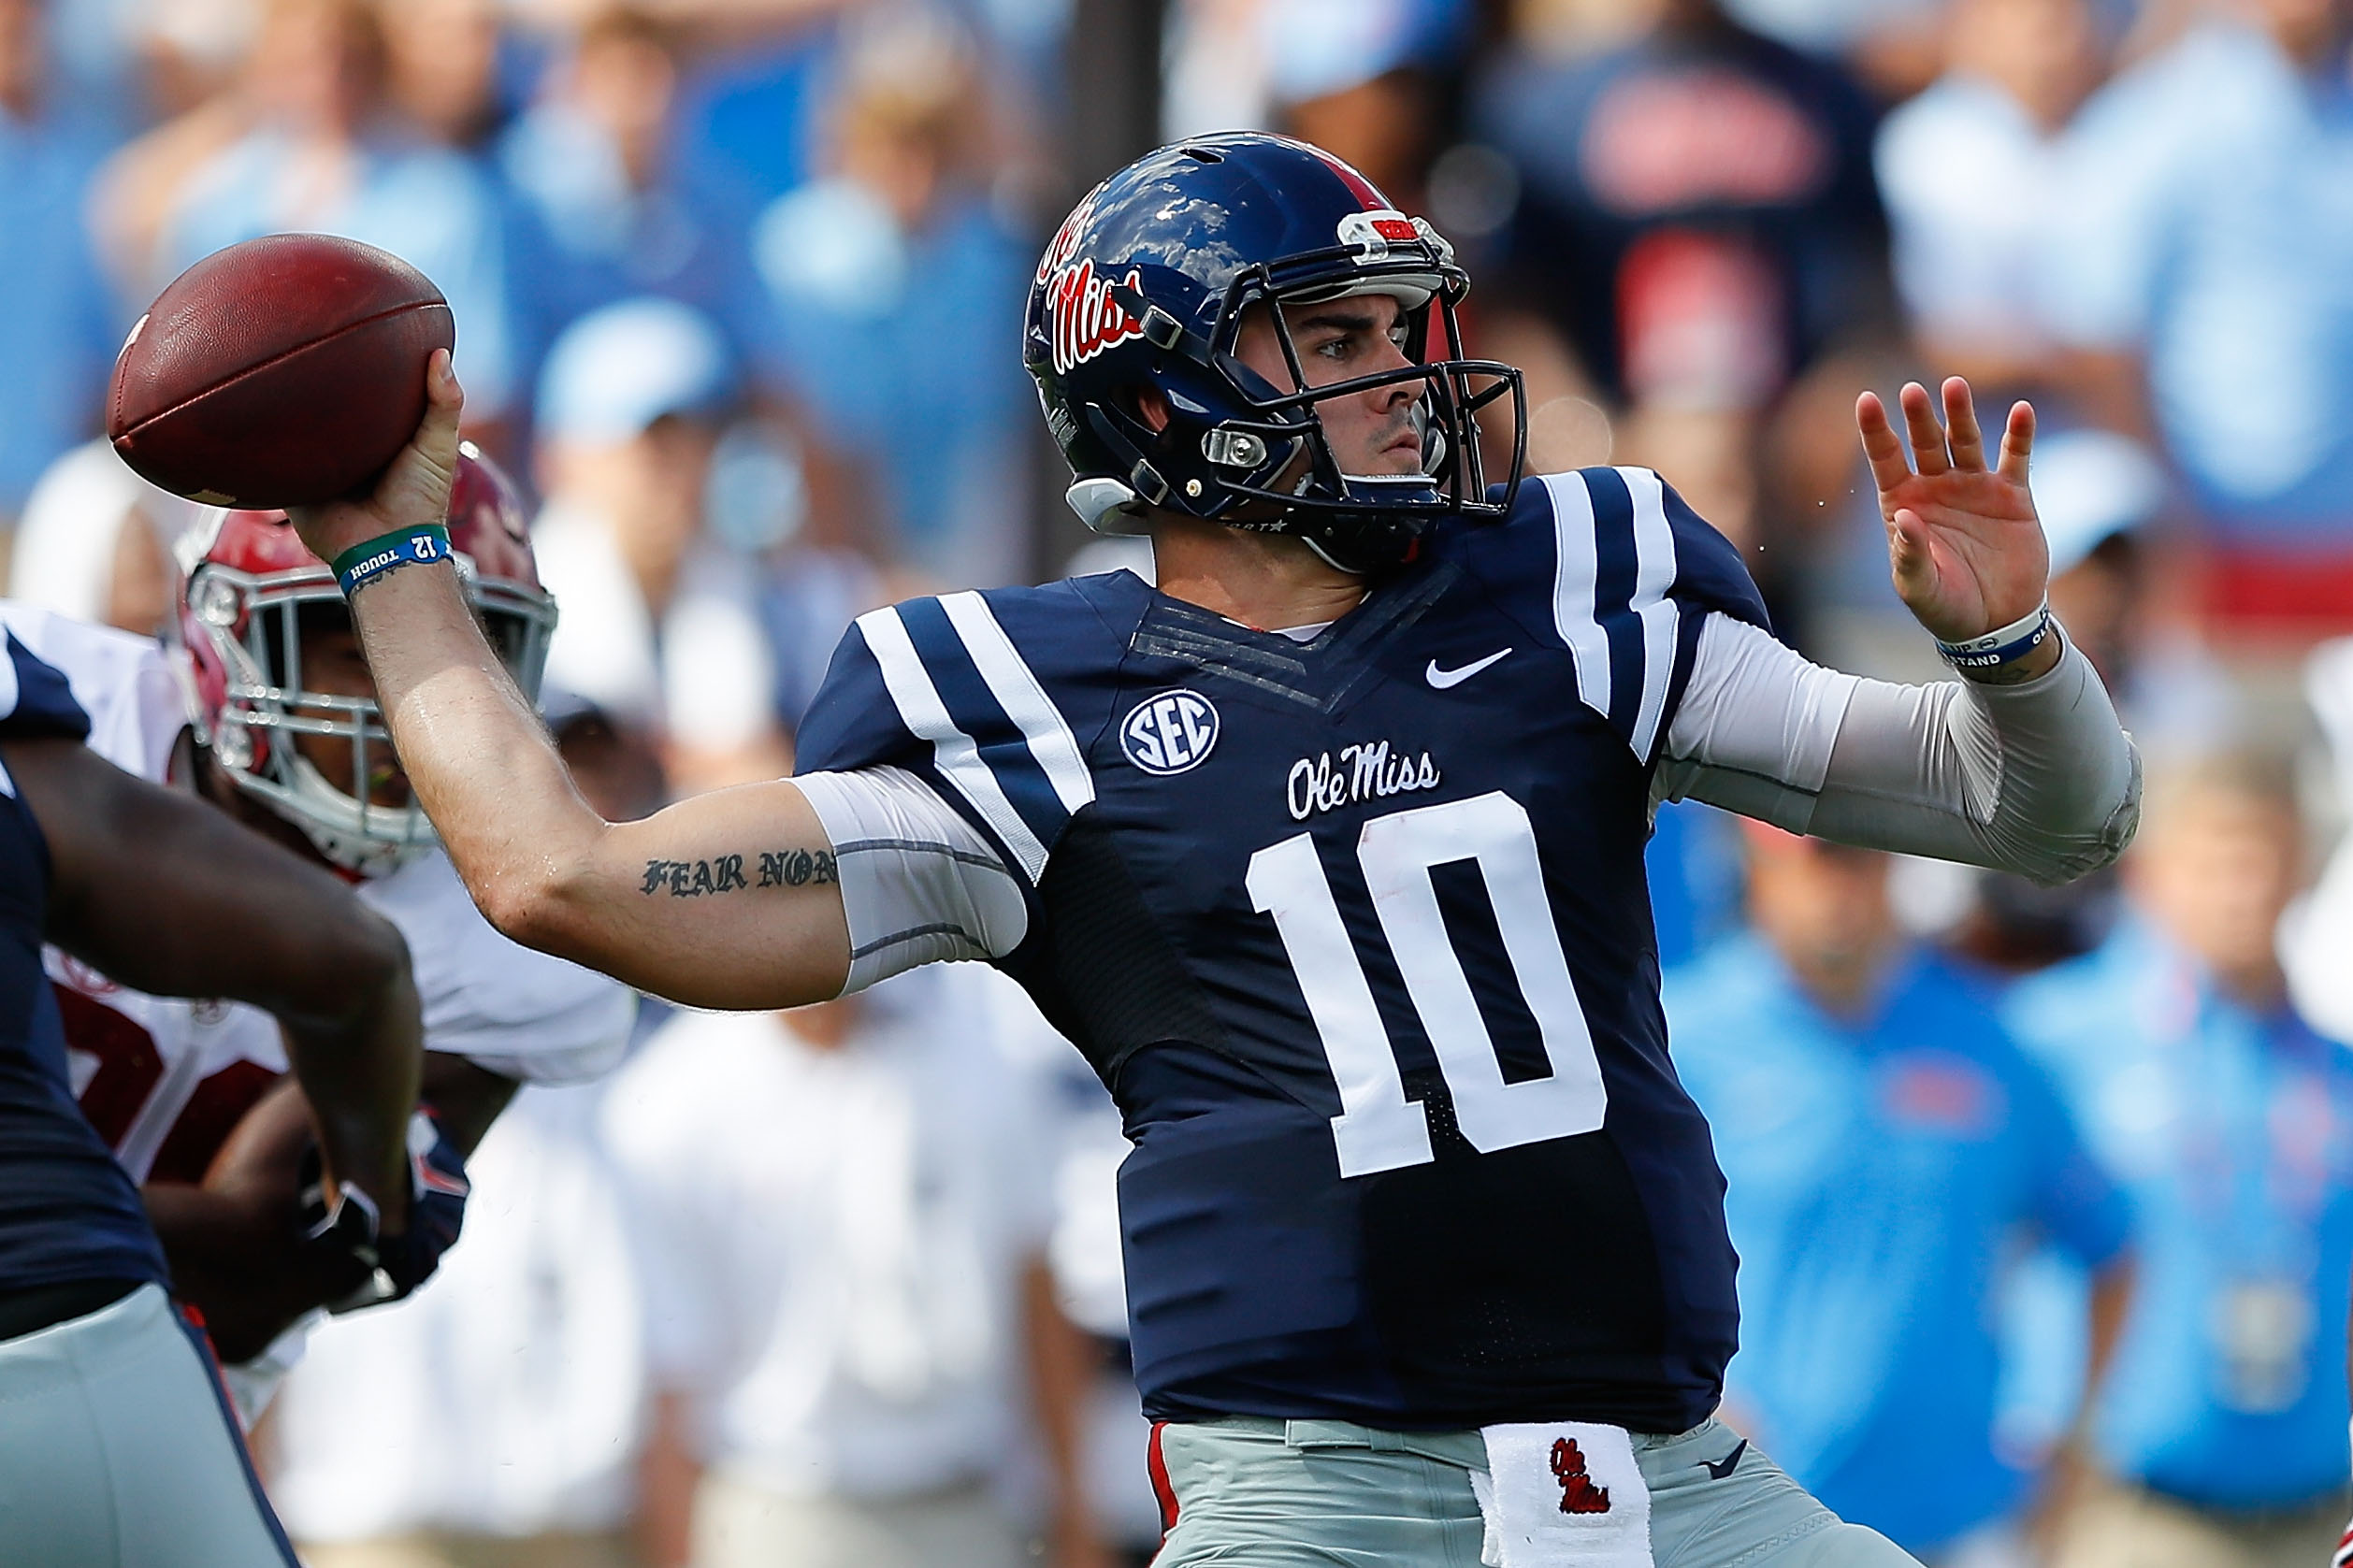 Ole Miss quarterback Chad Kelly might not get drafted because of concerns over both his injury history and off-the-field behavior. (Getty Images)